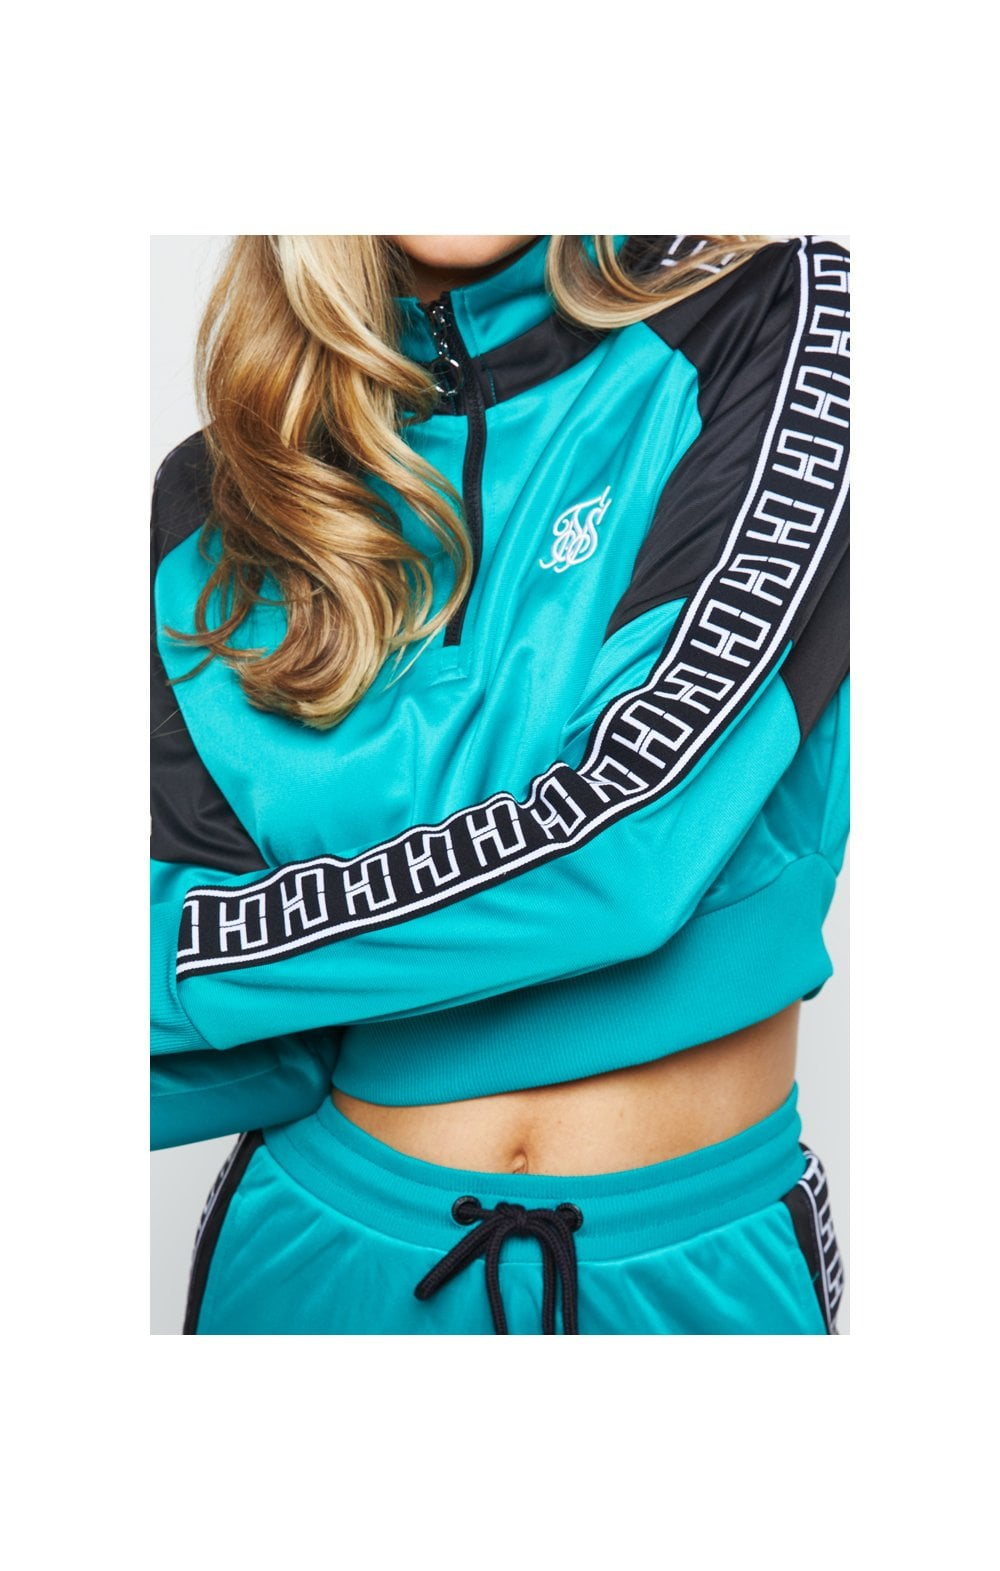 SikSilk Azure Track Top - Teal (1)